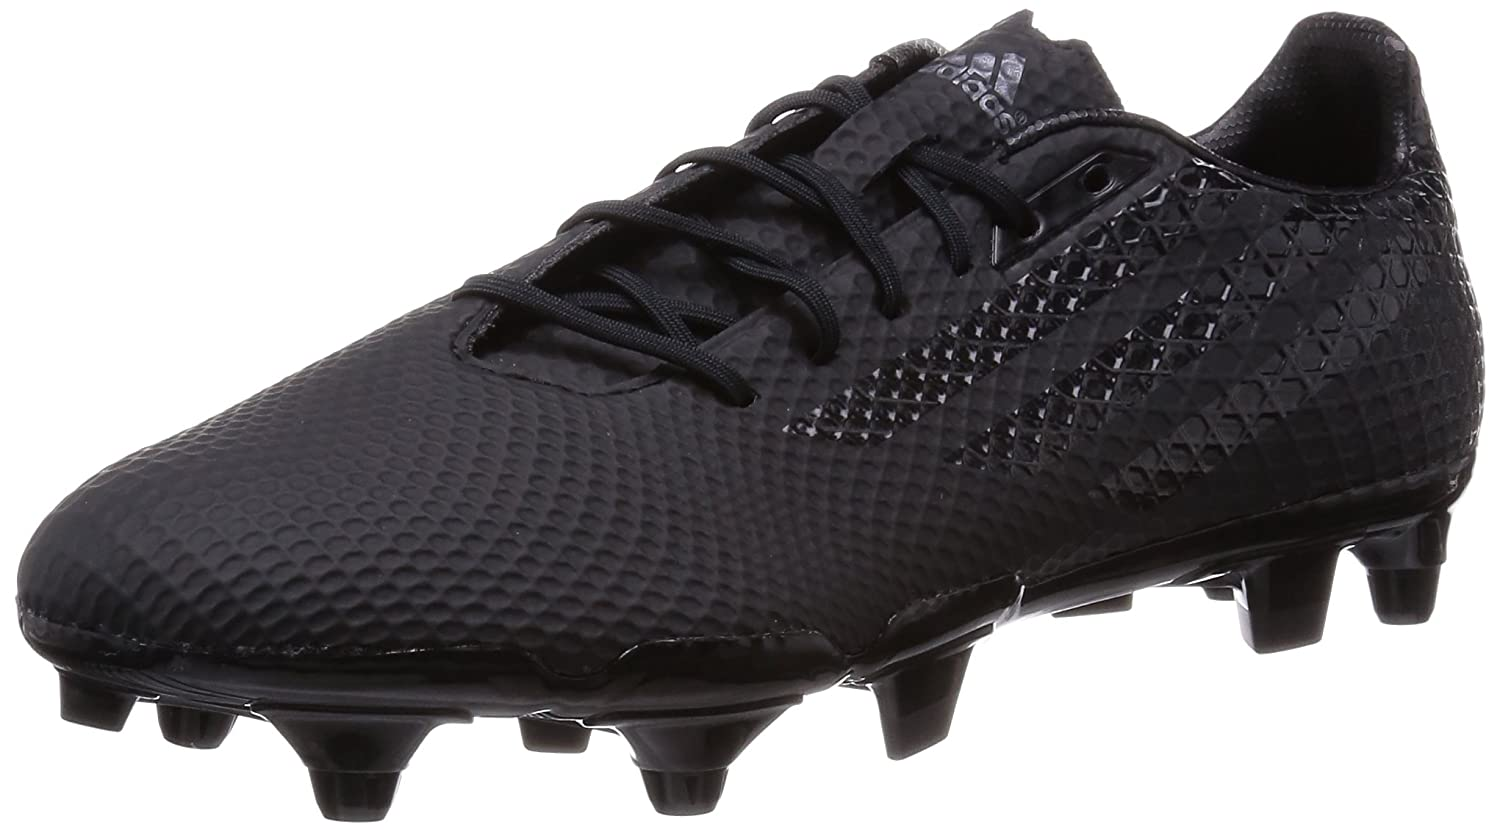 077d18cbff10 adidas AW15 Crazyquick Malice SG Rugby Boots - Black (Black